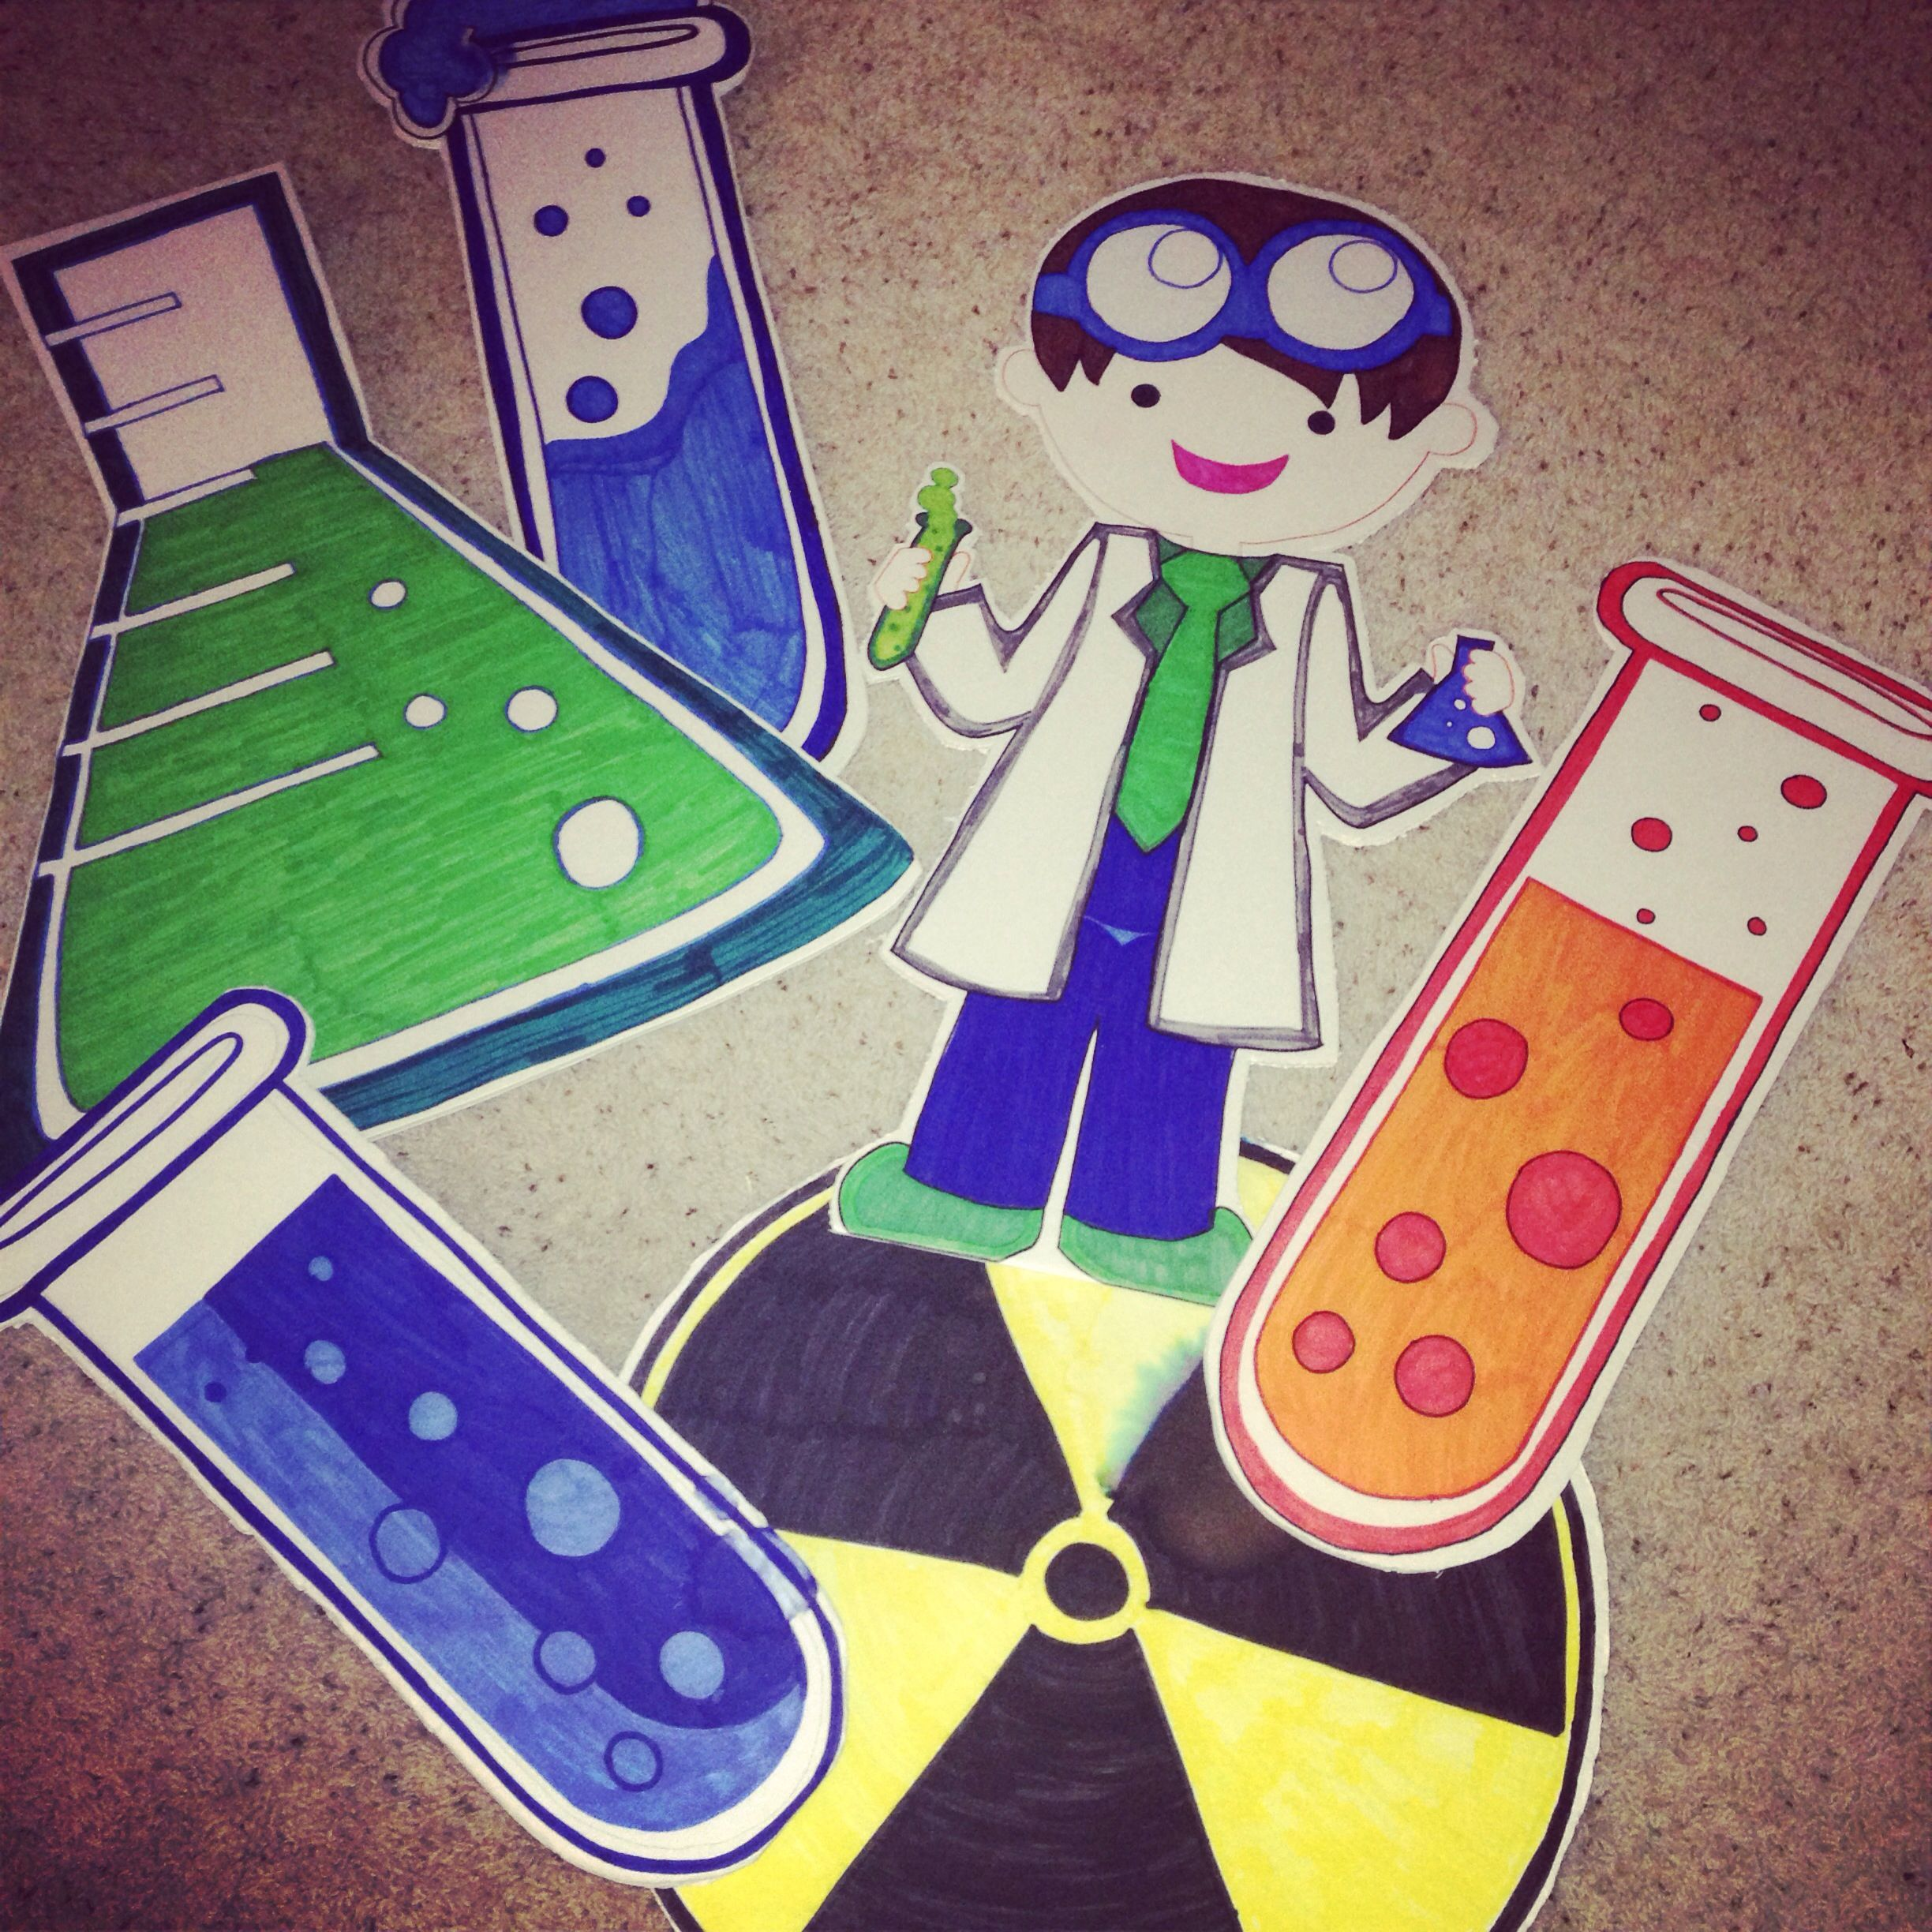 Mad Science Decorations Lawn Signs Cient Atilde Shy Ficos